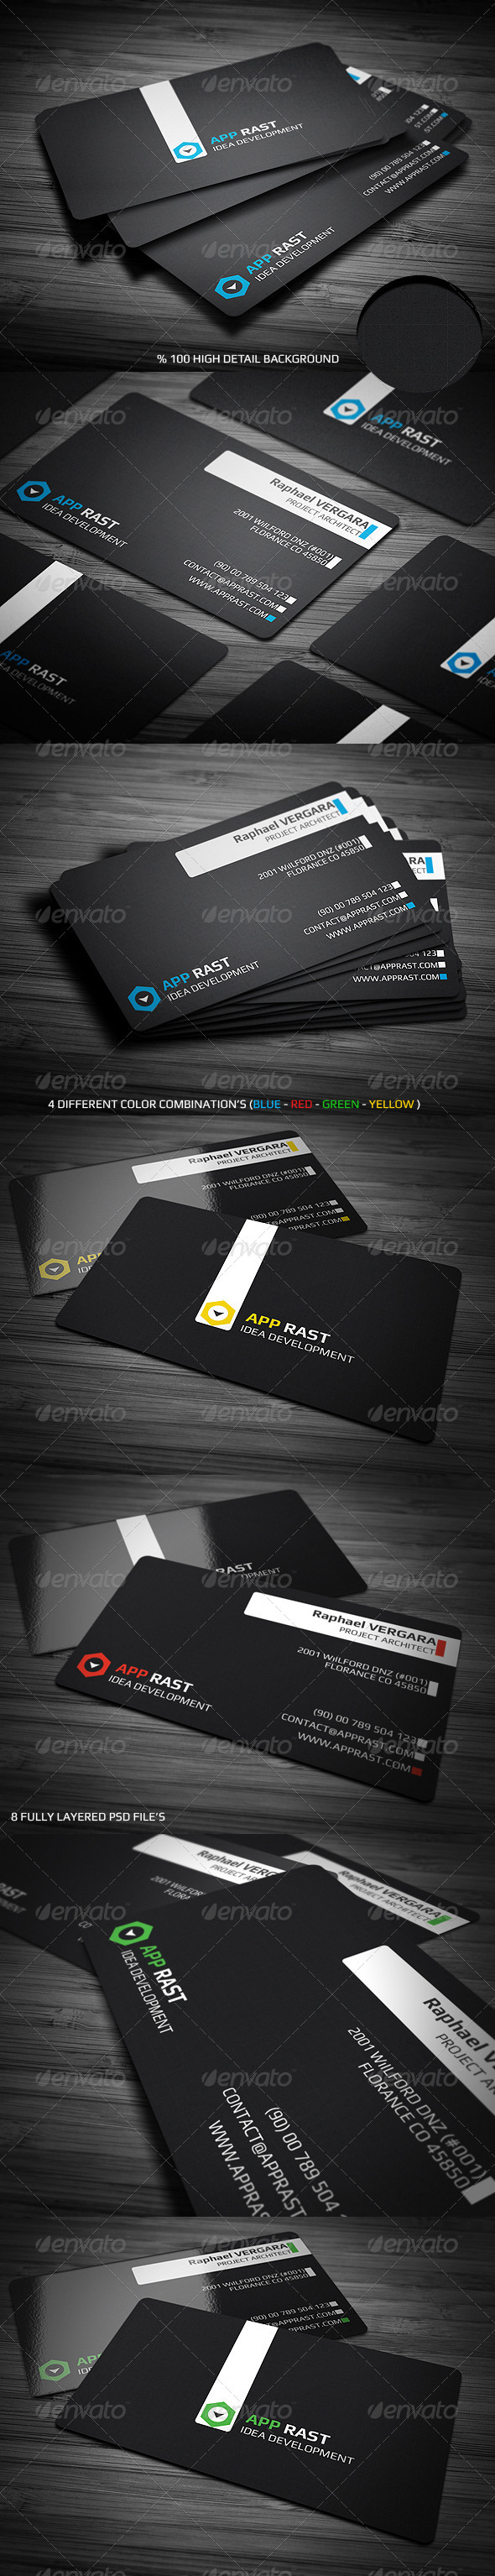 Black Corporate Business Card - Corporate Business Cards